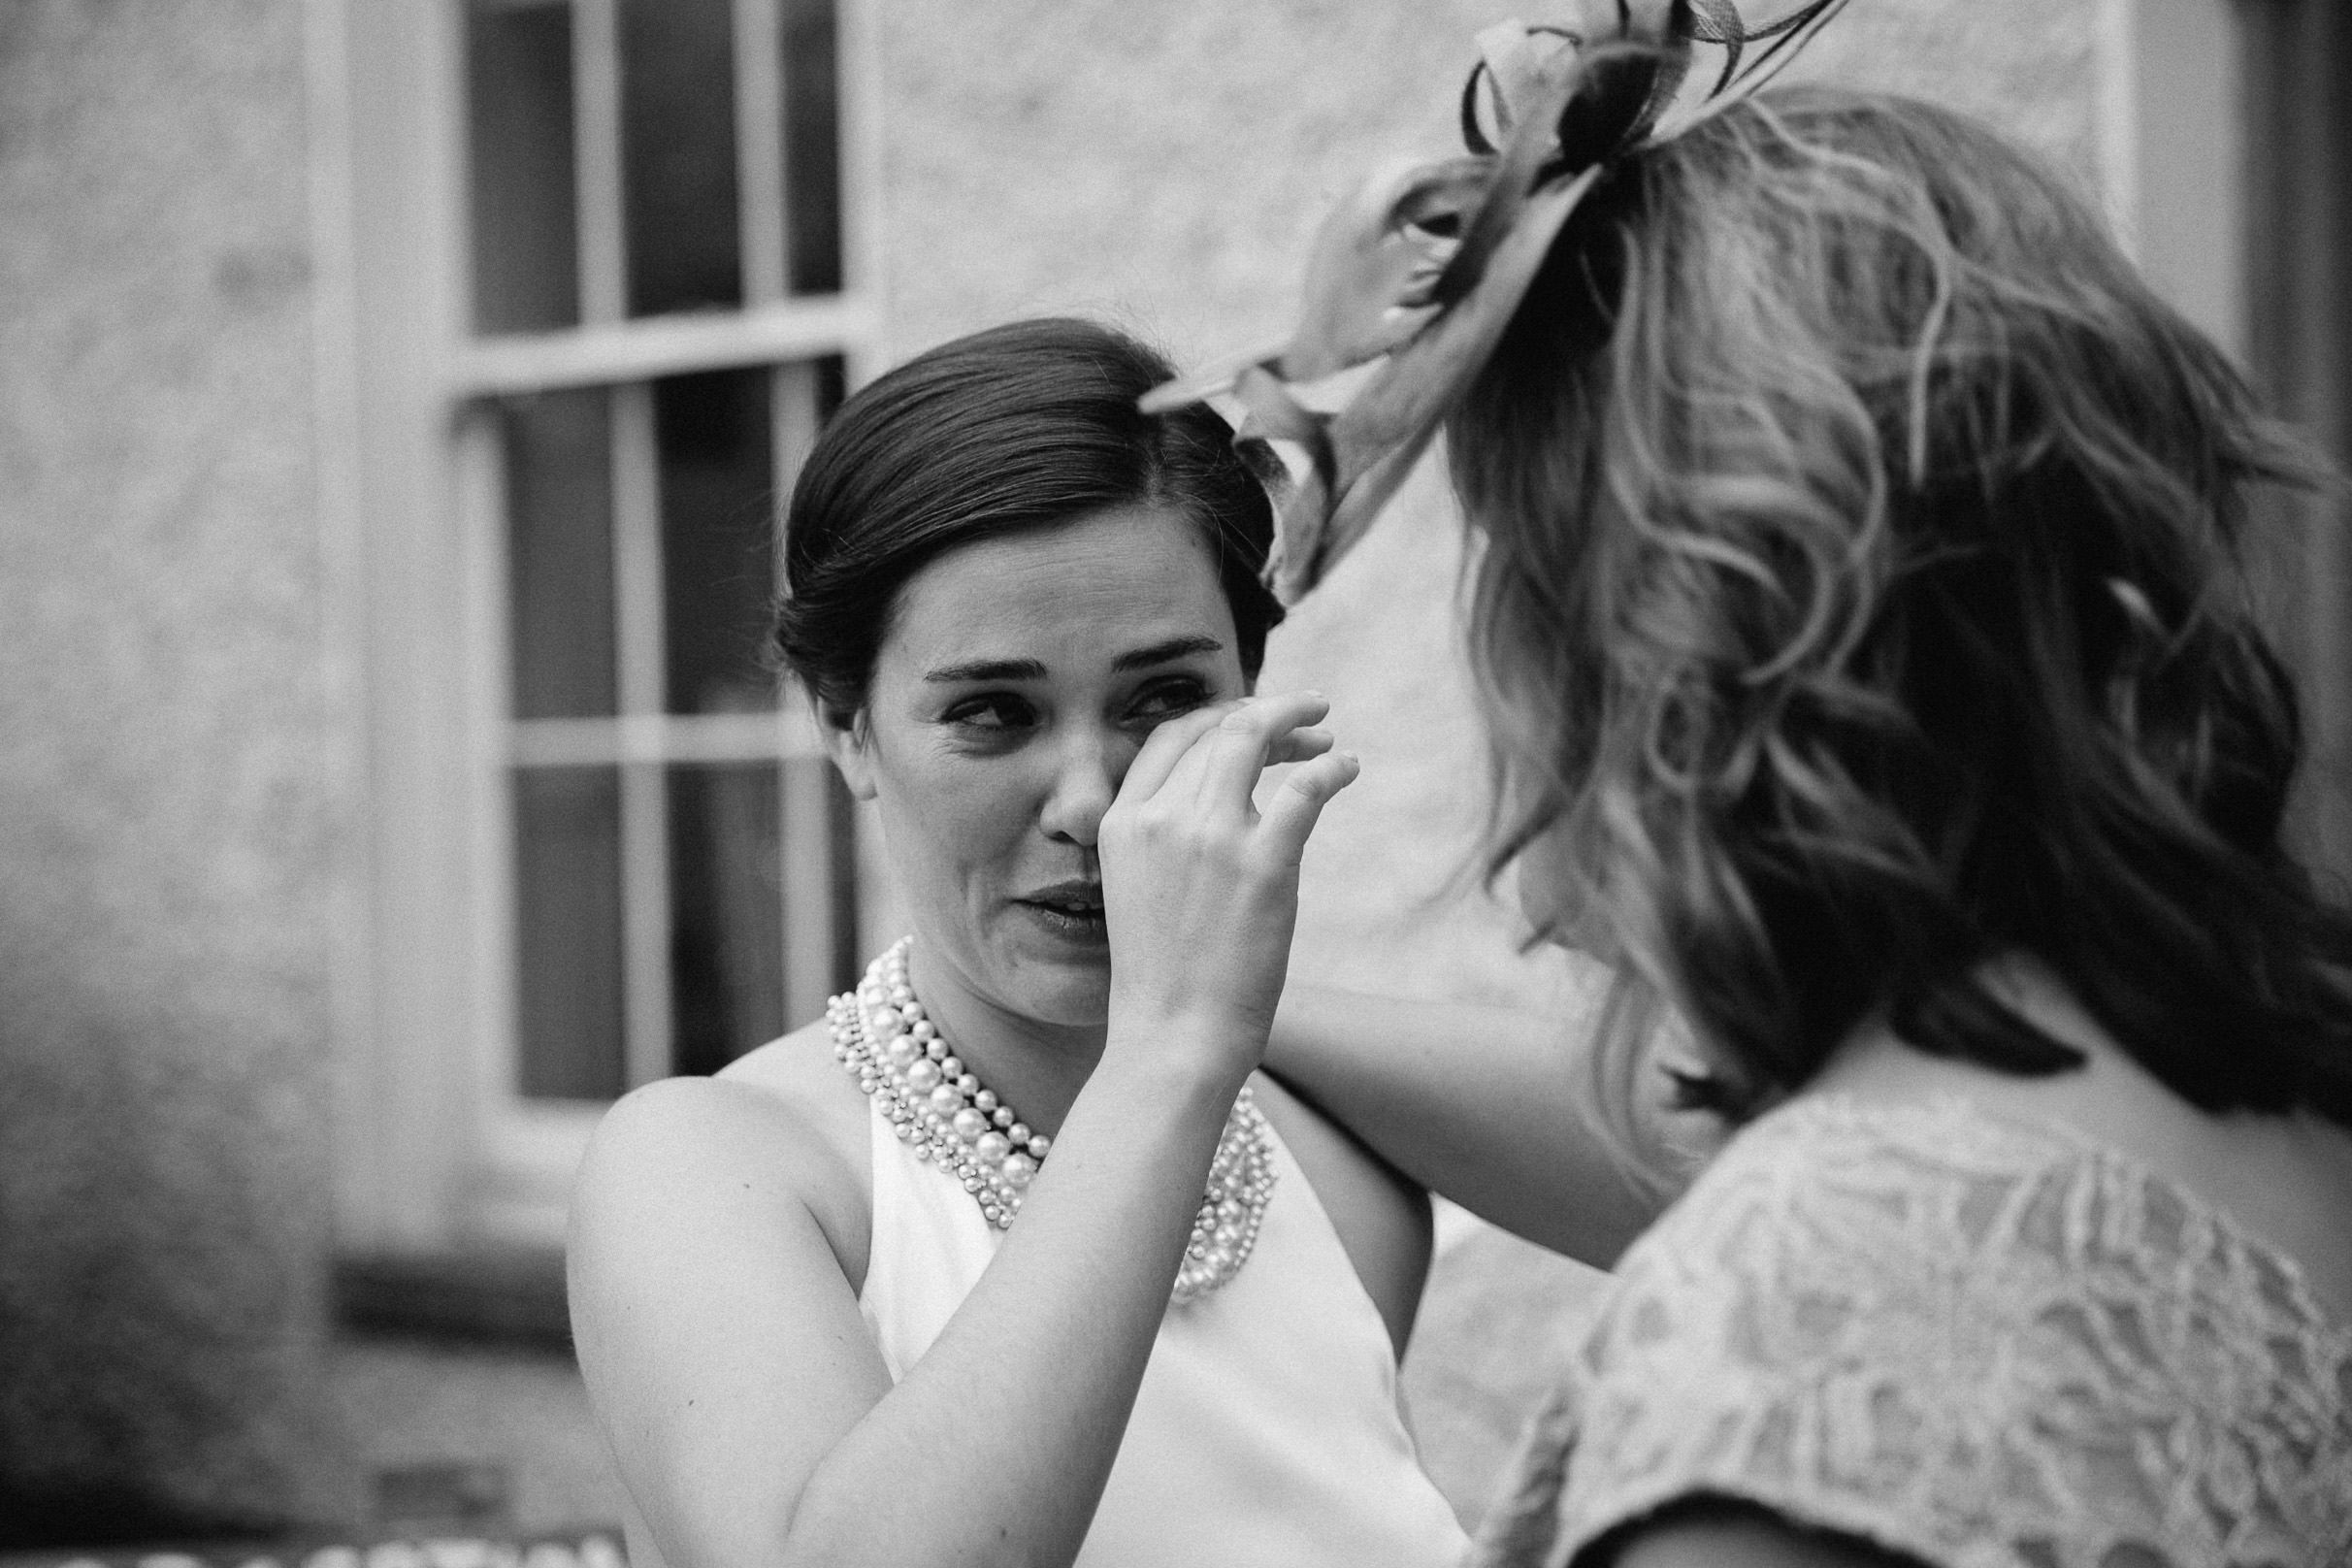 clairebyrnephotography-fun-wedding-photographer-ireland-creative-167.jpg